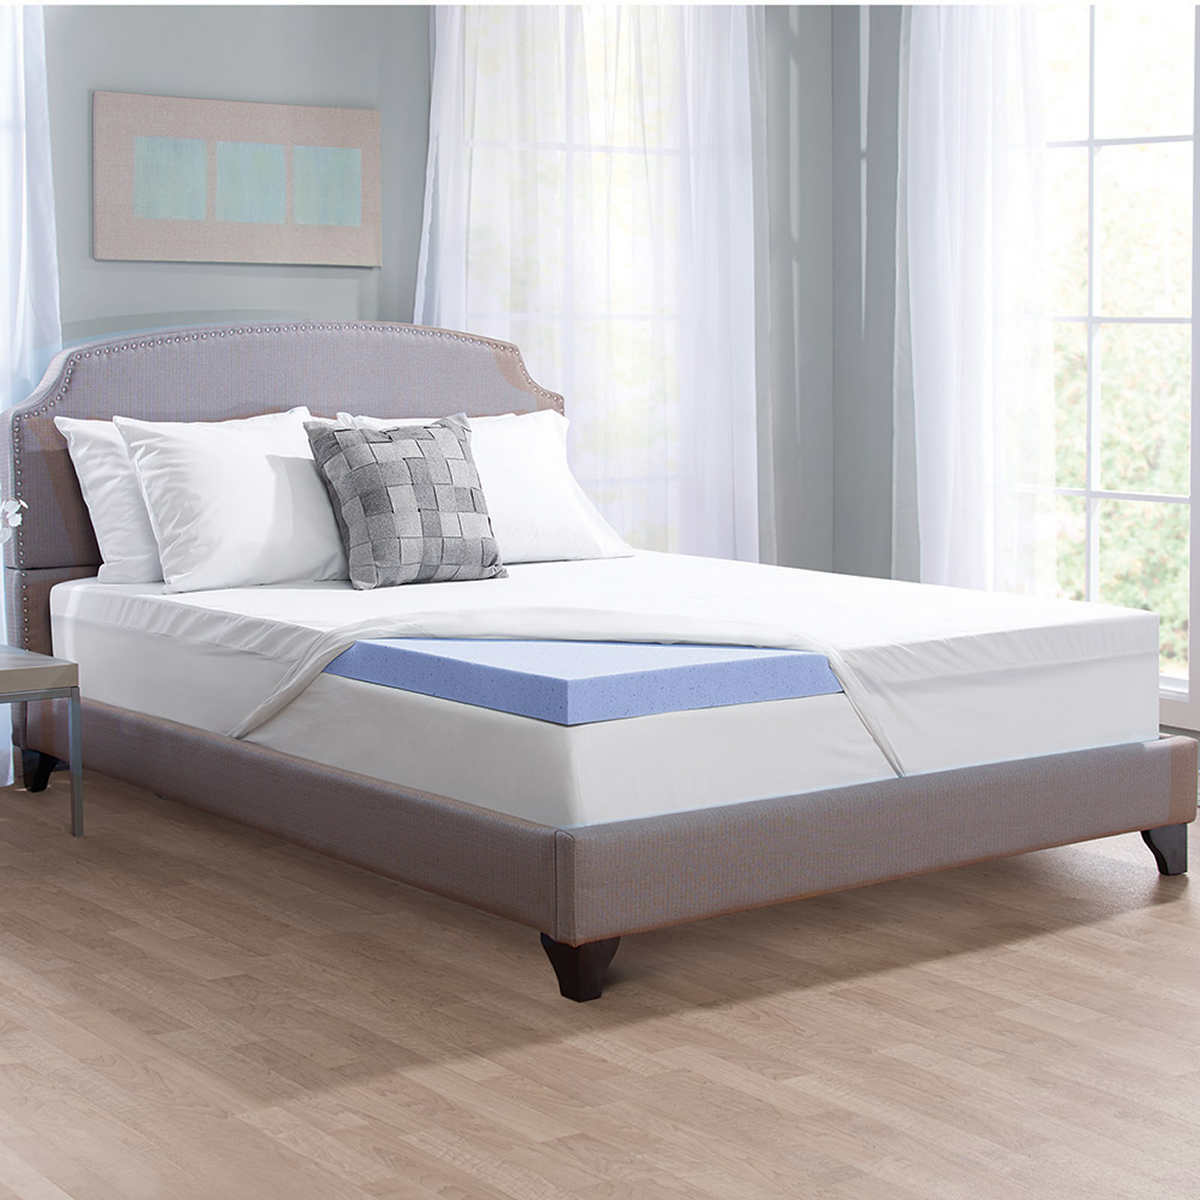 "Novaform Serafina Collection 3"" Gel- Memory Foam Mattress Topper with  TriComfort Technology"